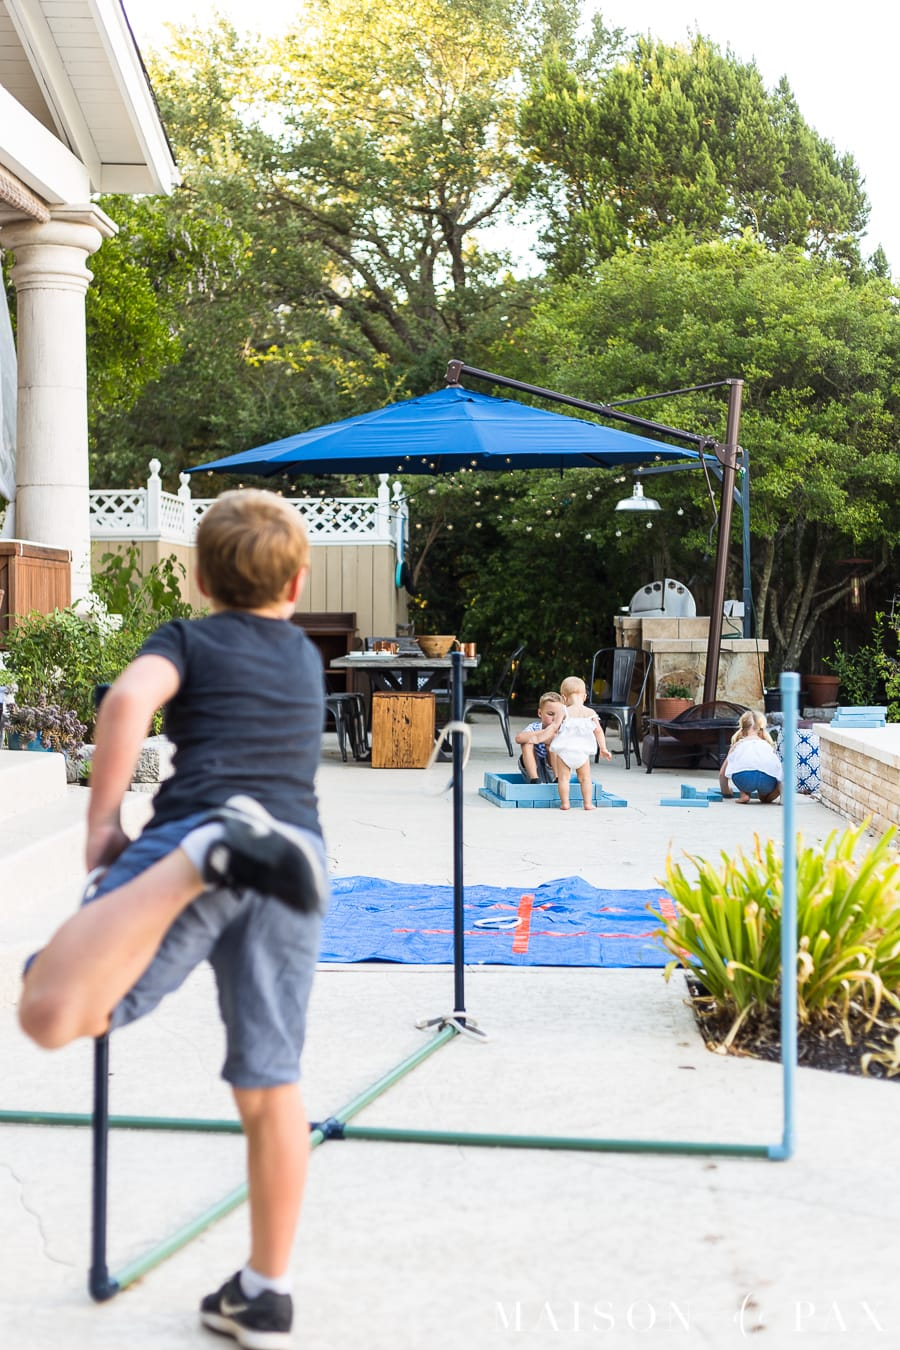 Make giant ring toss with your kids, plus tips for completing project with kids! #familyfun #familyproject #outdoorgames #kidfriendlyproject #diyproject